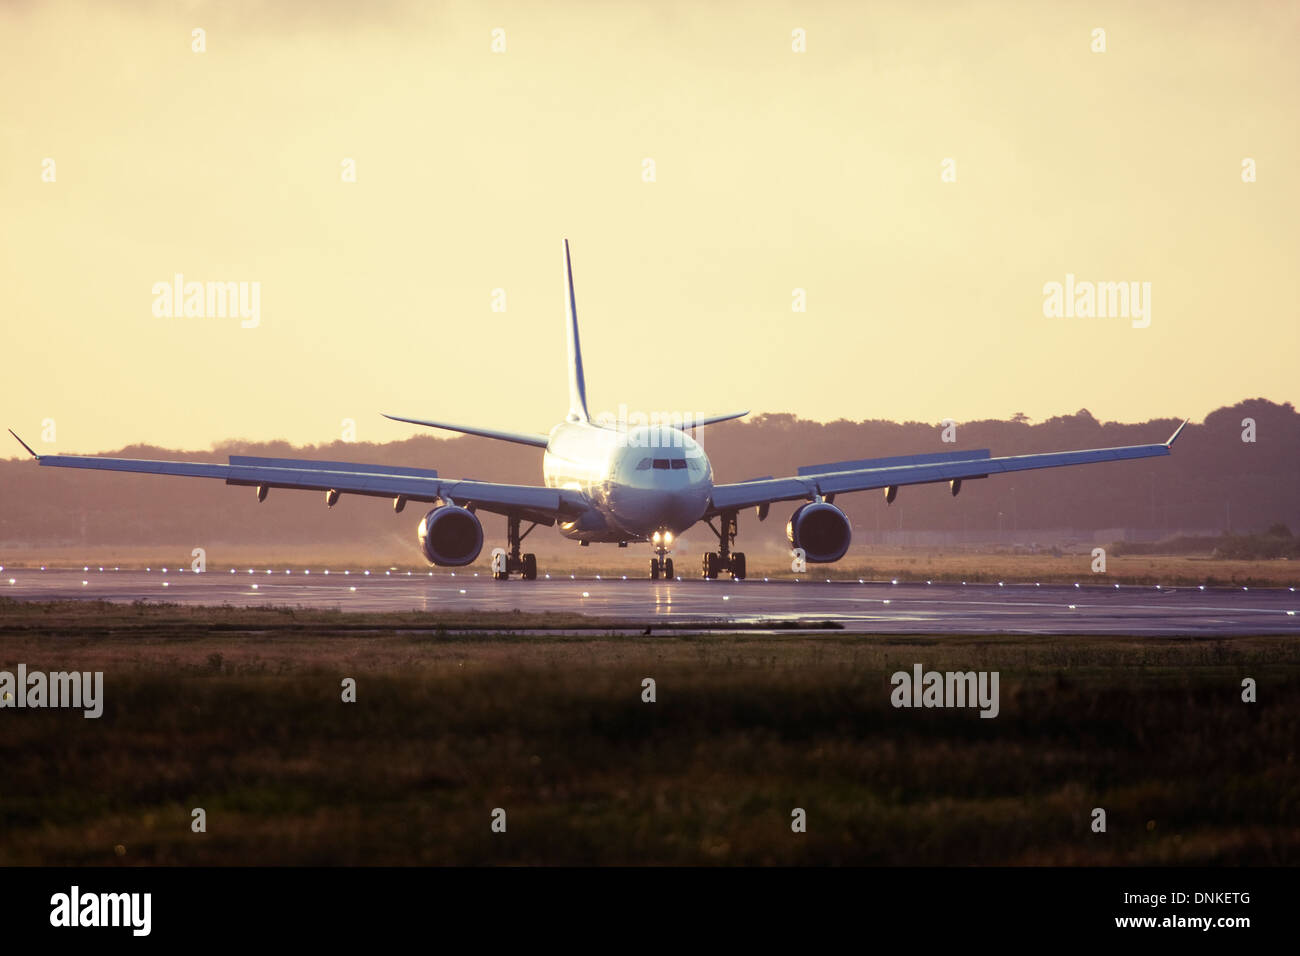 Commercial airliner at London Gatwick Airport runway, England, United Kingdom Stock Photo